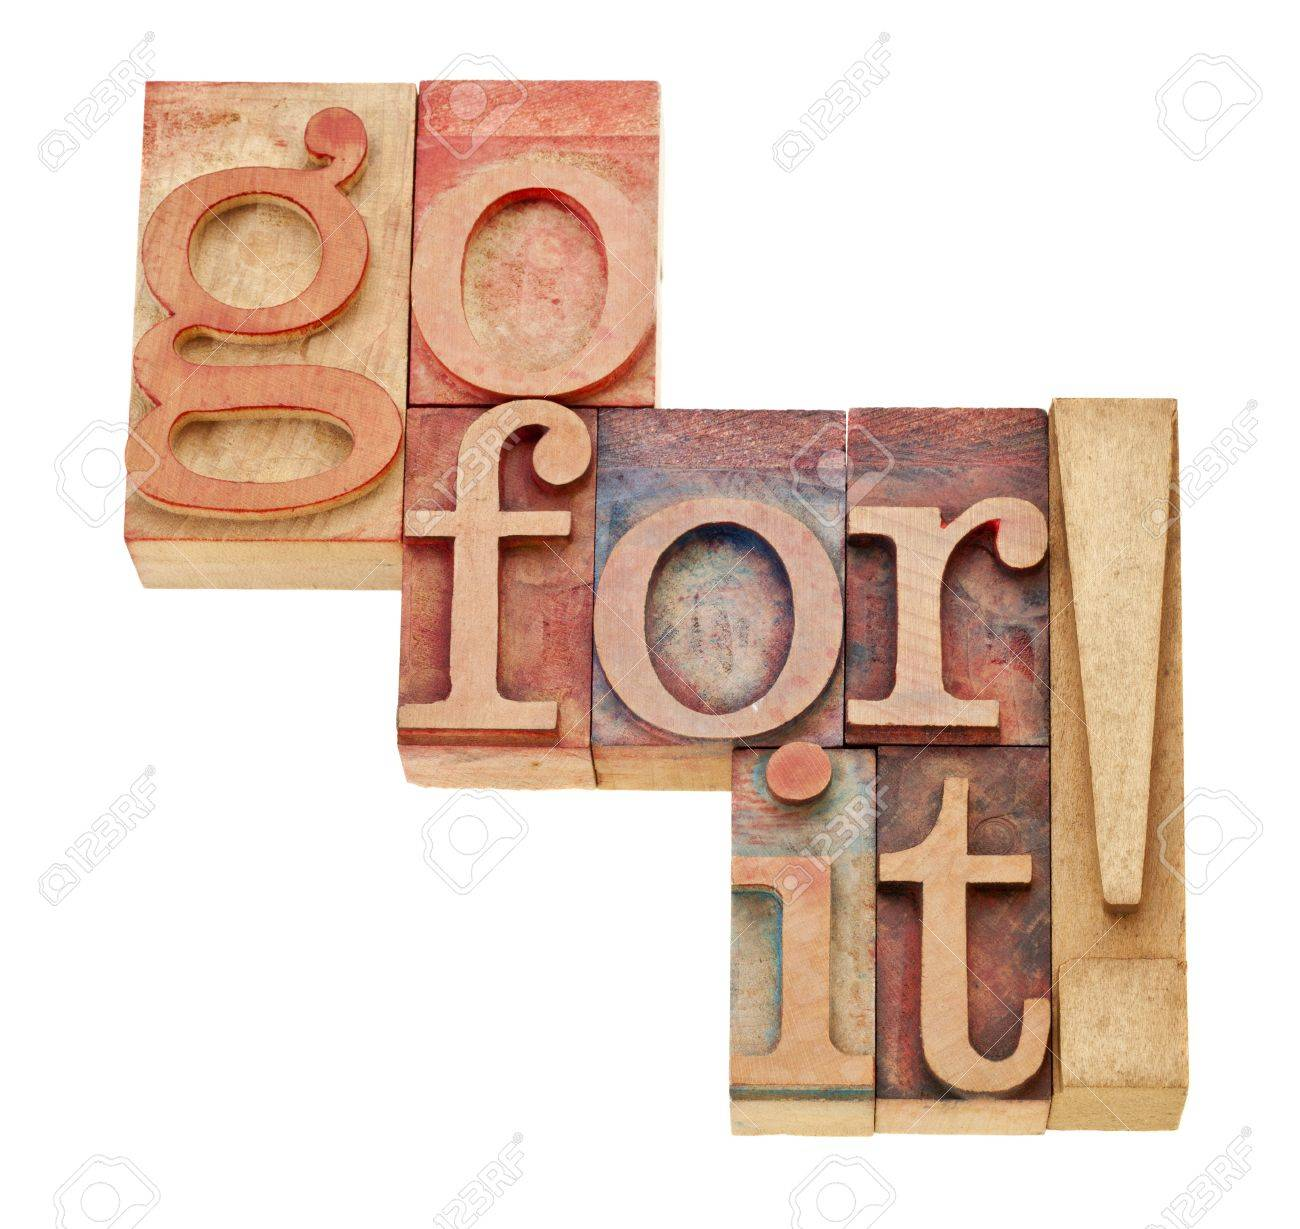 go for it - motivation concept - isolated words in vintage wood letterpress printing blocks Stock Photo - 12114984